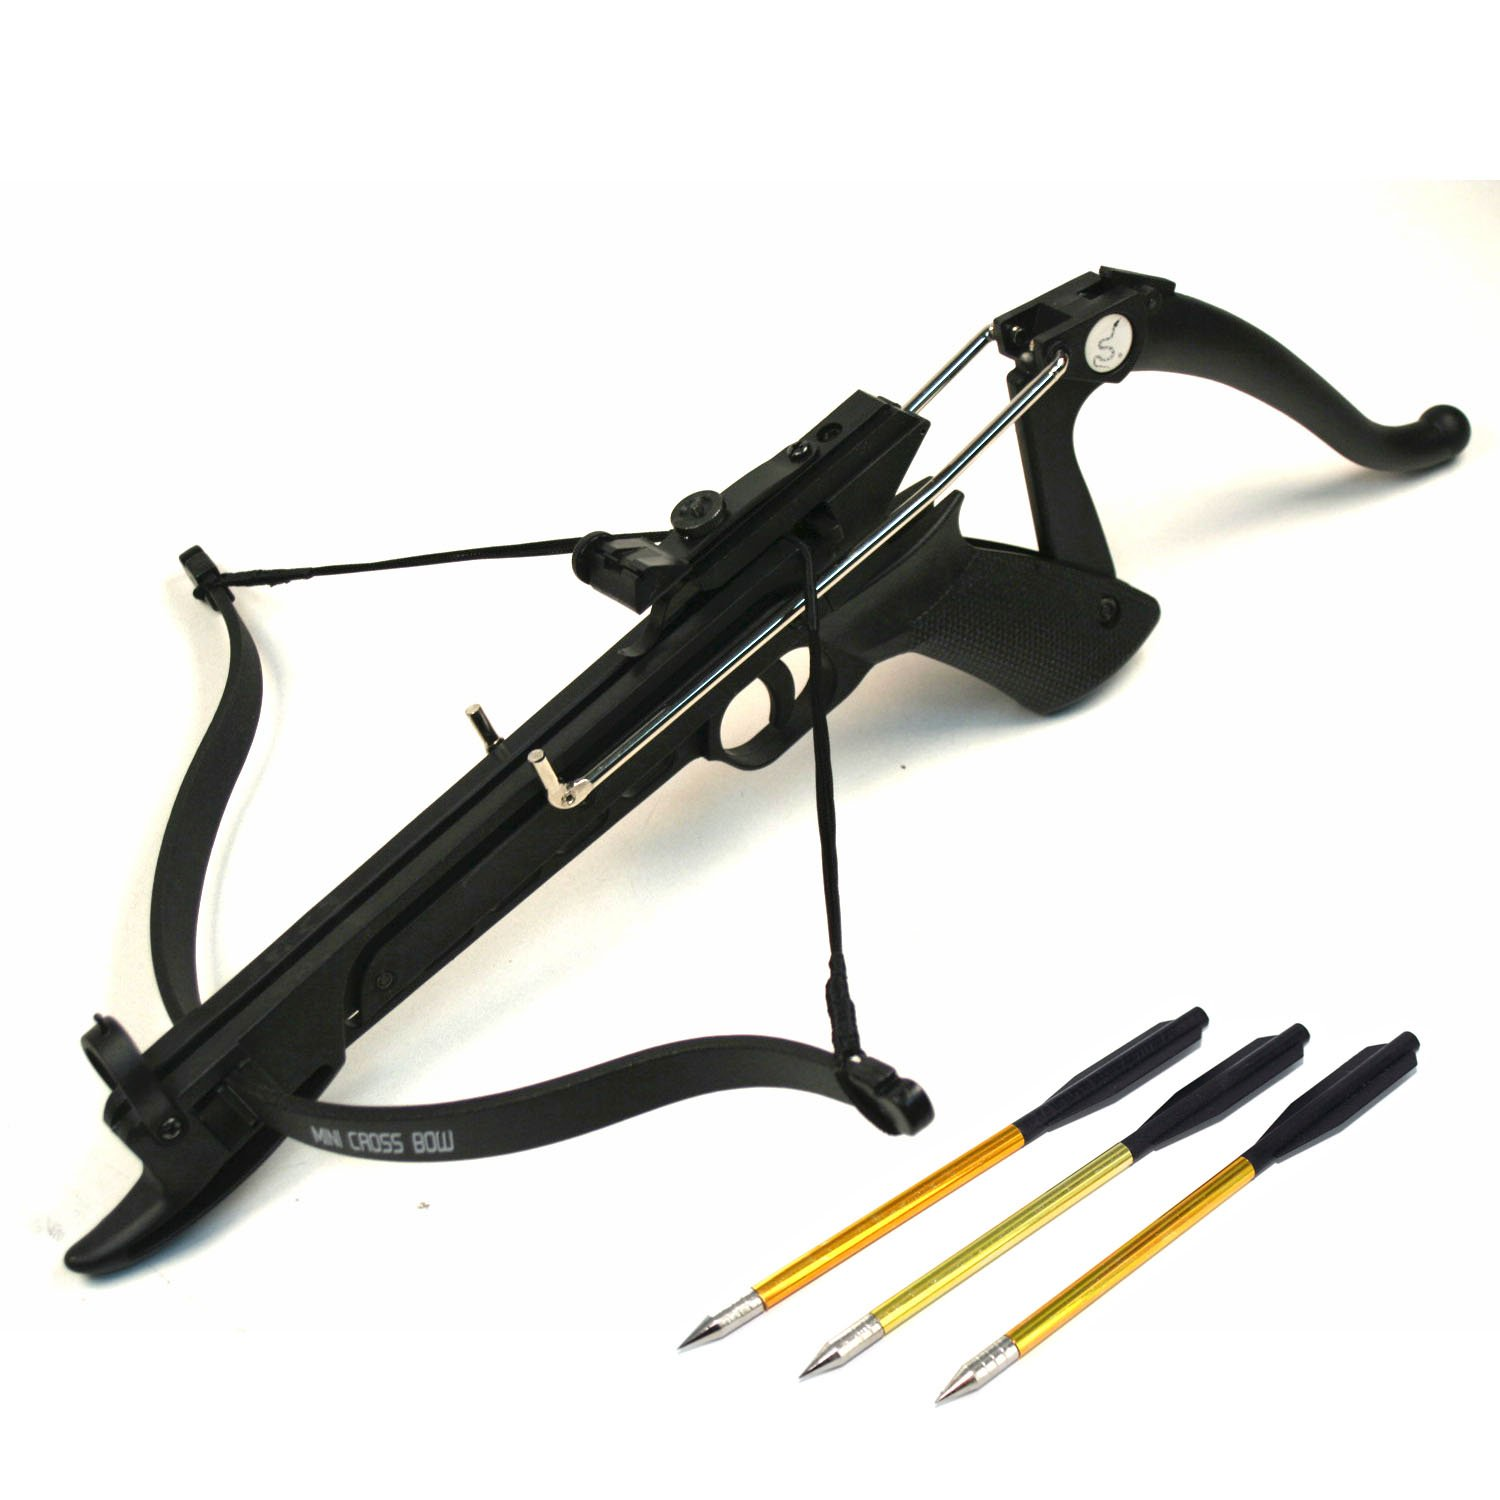 La ballesta de pistola Cobra – Ace Martial Arts Supply Cobra System Self Cocking Pistol Tactical Crossbow, 80-Pound